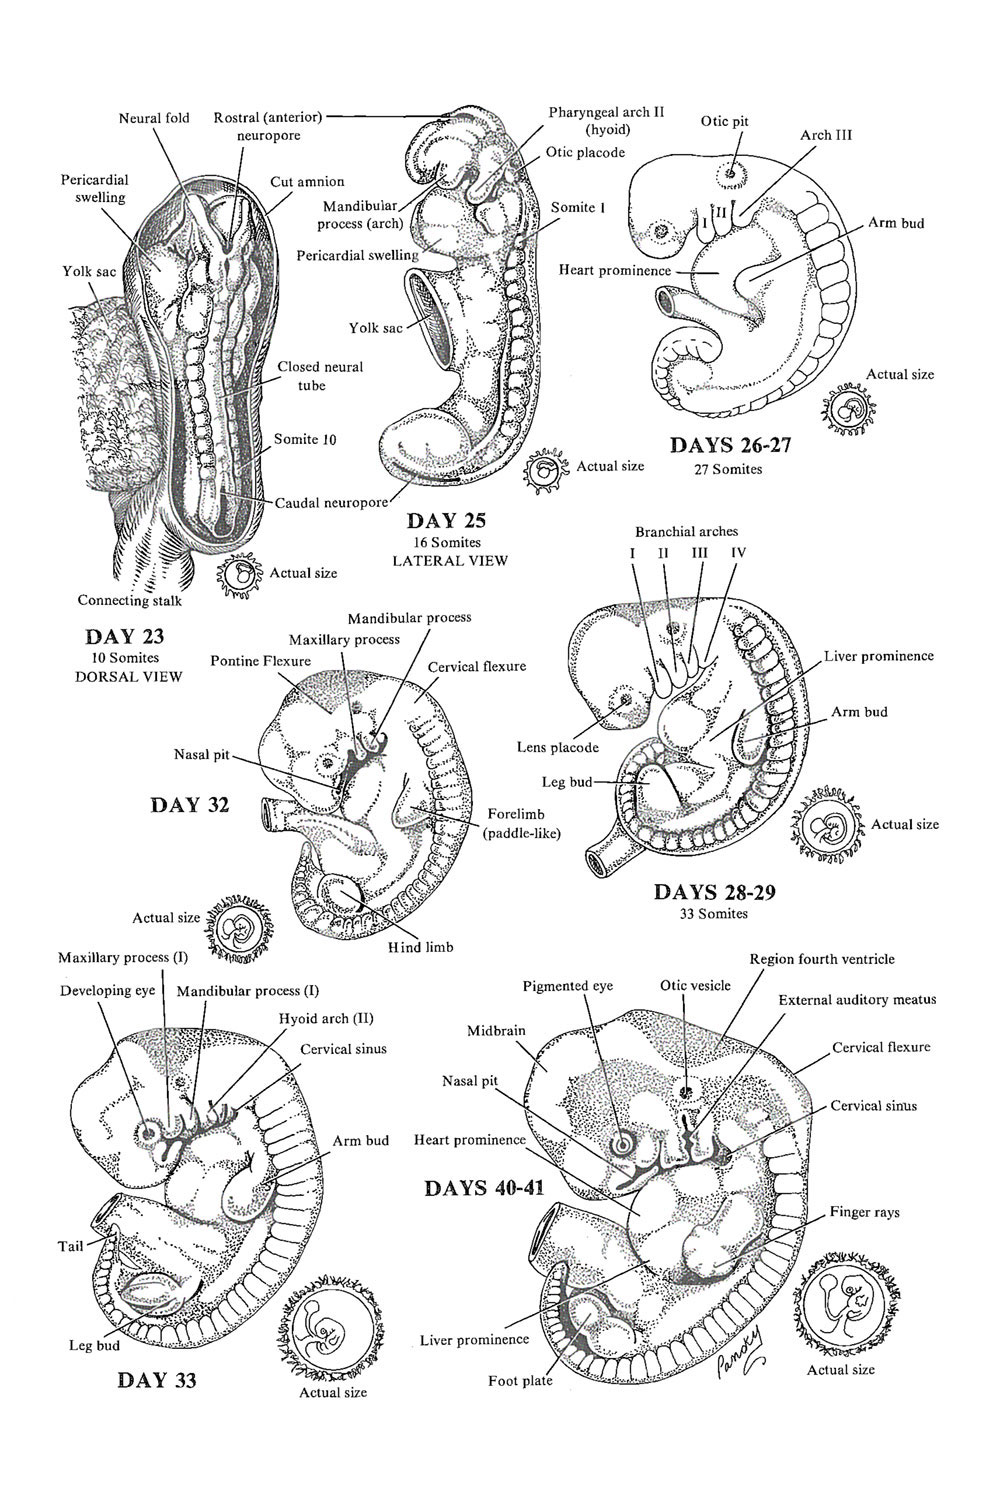 Chapter 23. Weeks 4 to 6 of Development: The Embryonic